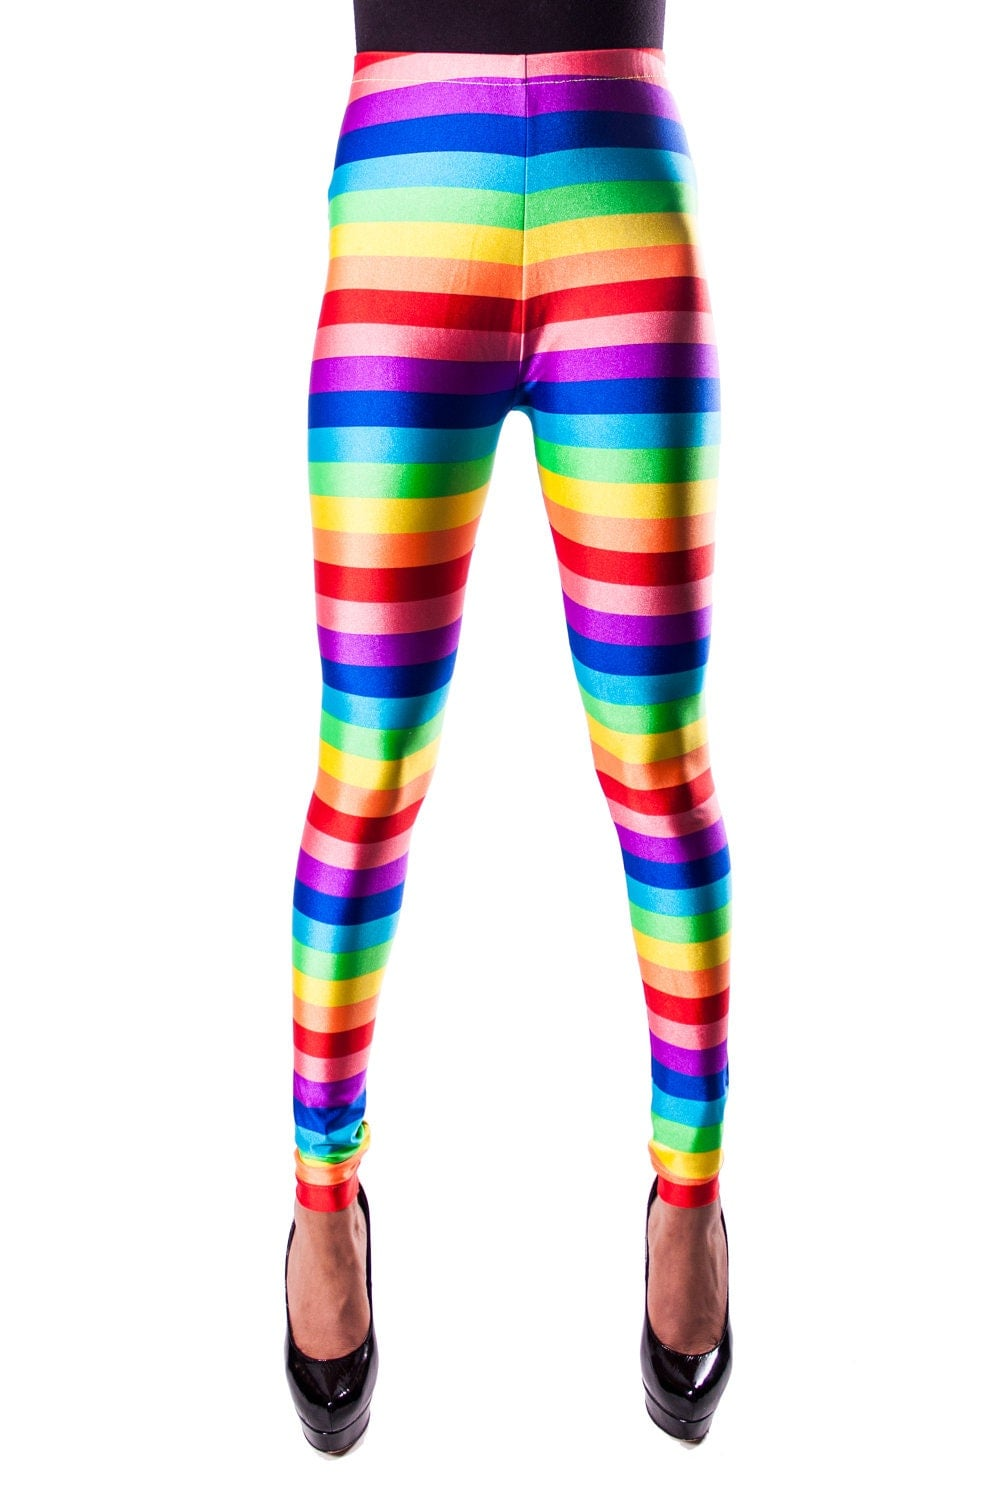 These Lumo™ Rainbow Reflective Leggings are designed with a high-stretch, compressive fabric, crafted with wide elasticated waistband and flat seam lines that provide a smooth feel against your skin.